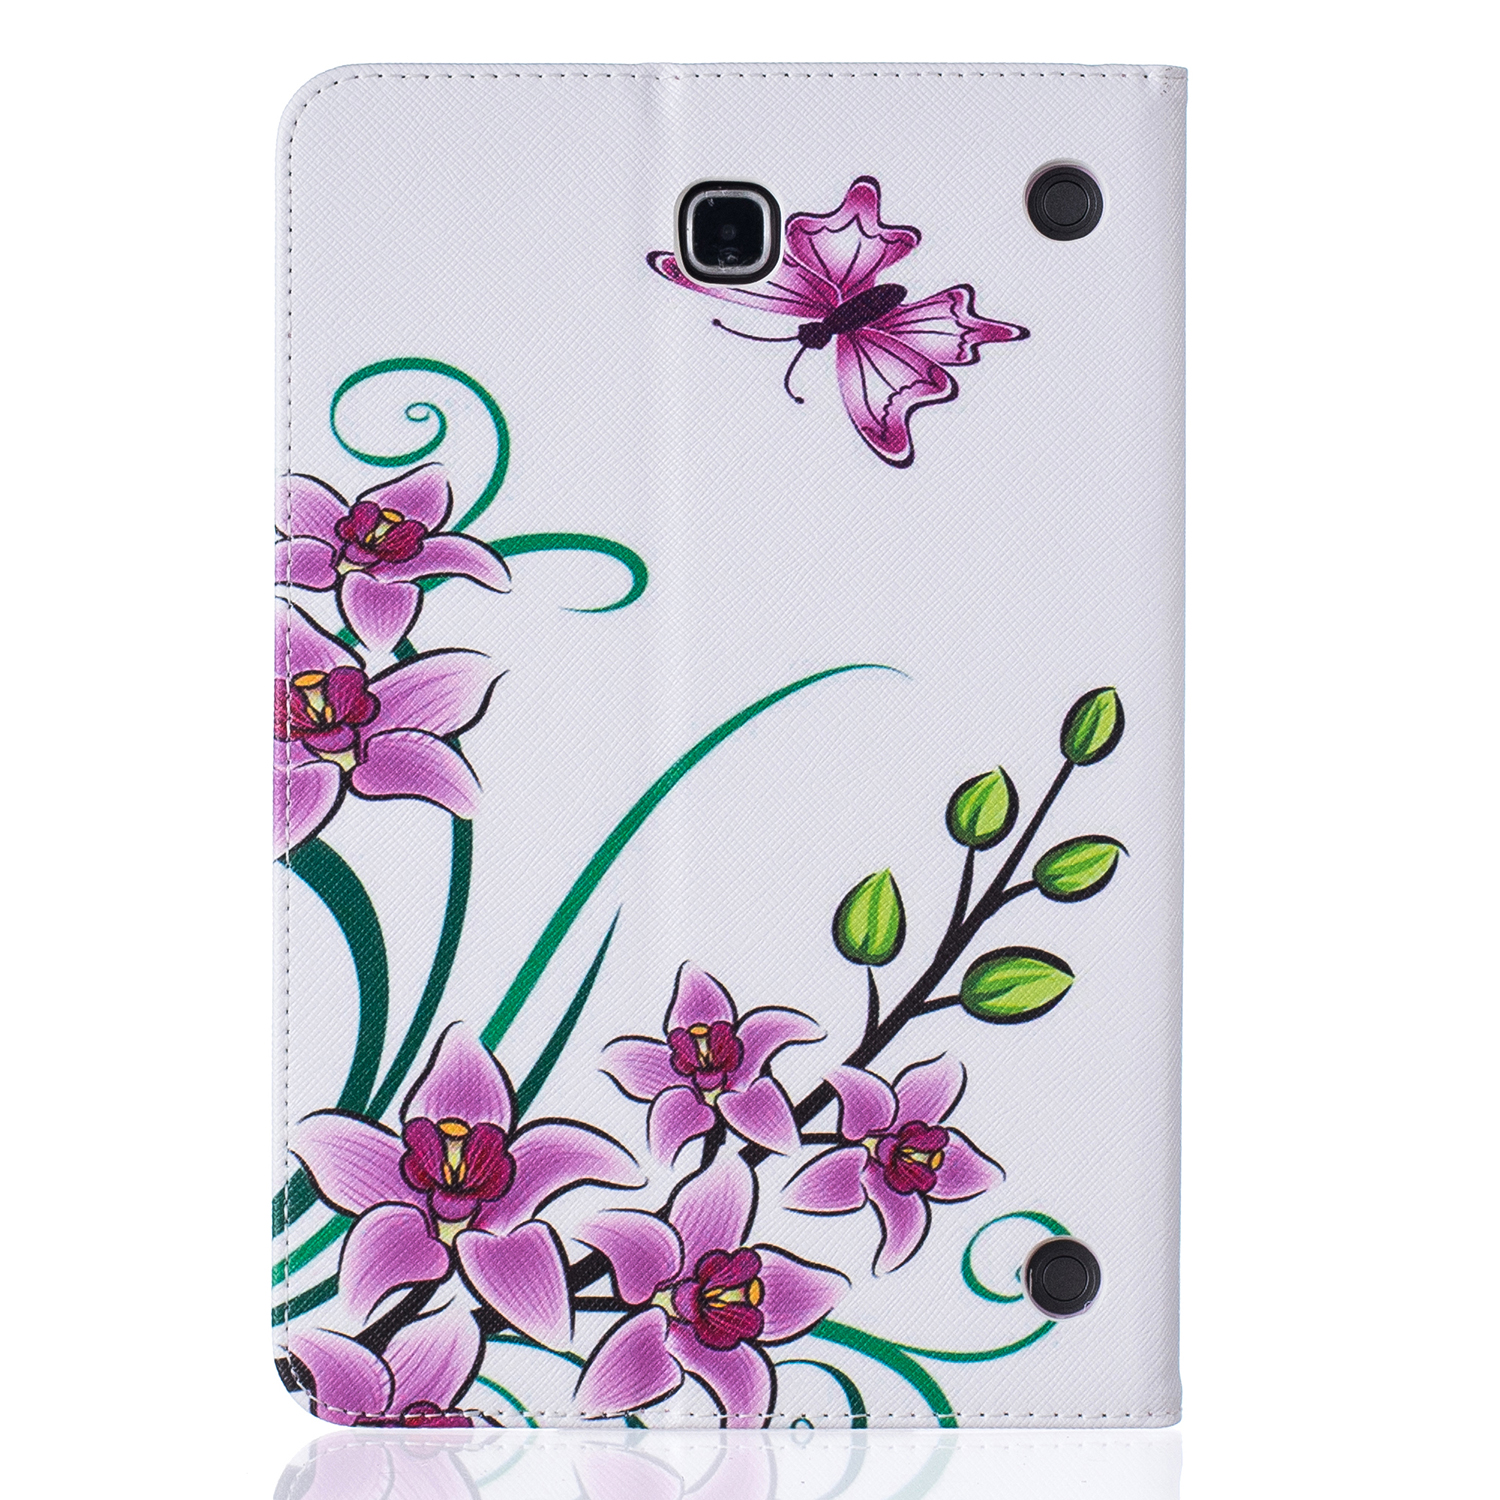 Fashion PU Leather Case For Samsung Galaxy Tab A 8.0 T350 T355 SM-T355 8'' Tablet Cover Case T350 Folio Stand Case #R